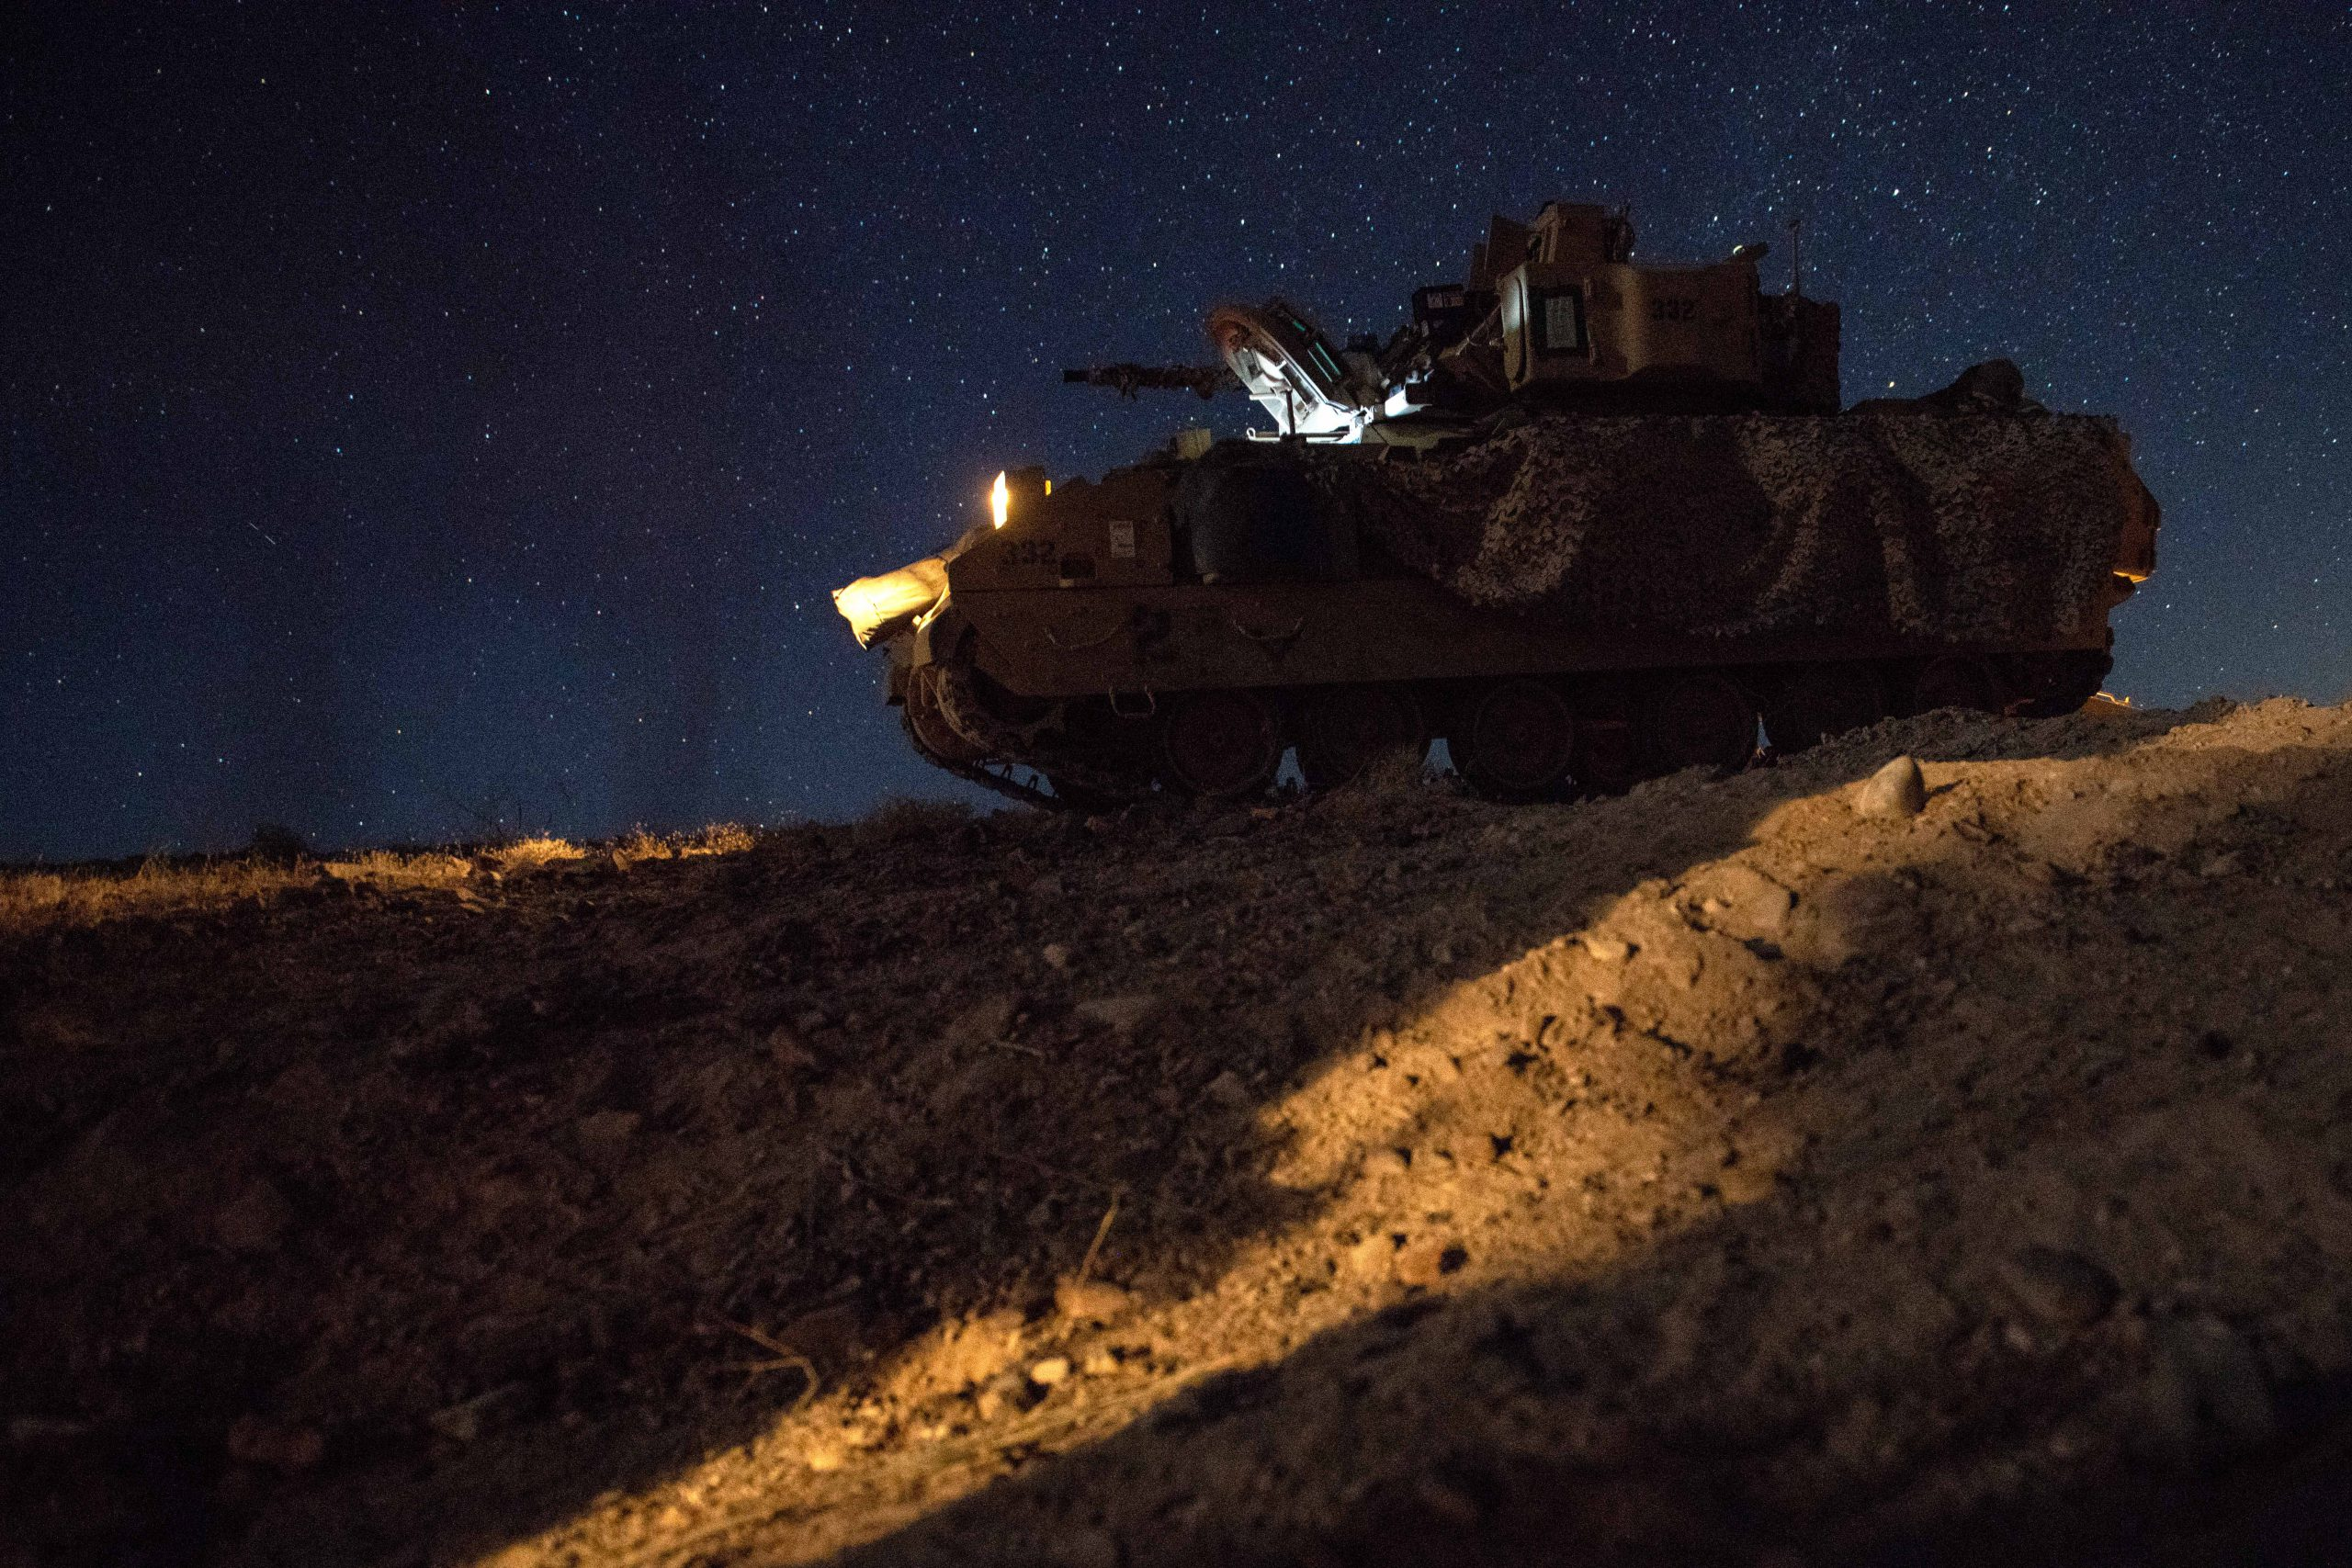 "Soldiers of the 1st Combined Arms Battalion, 194th Armor Regiment, wait to start an overnight mission to gain control of the occupied city of Razish during a decisive-action training exercise in the desert environment of the National Training Center, Fort Irwin, California, on July 24, 2020. Soldiers loaded into Bradley Fighting Vehicles early in the morning to reach their objective before sunrise in an effort to surprise the opposing force known as Blackhorse. Blackhorse Soldiers of the 11th Armored Cavalry Regiment-Blackhorse, are dedicated to testing units in ""The Box.""    Brigade Soldiers are taking part in one of the U.S. Army's most challenging land force training exercises and have prepared for entering ""The Box"" for over a year, including during their 2019 annual training at Fort Hood, Texas, where they completed an eXportable Combat Training Center exercise.    The 1st Combined Arms Battalion, 194th Armor Regiment, is a Minnesota Army National Guard battalion headquartered in Brainerd. The overall unit mission is to provide heavy armor and mechanized infantry ground combat power to the 1st Armored Brigade Combat Team, 34th Infantry Division. (U.S. Army photo by Sgt. Sebastian Nemec)"